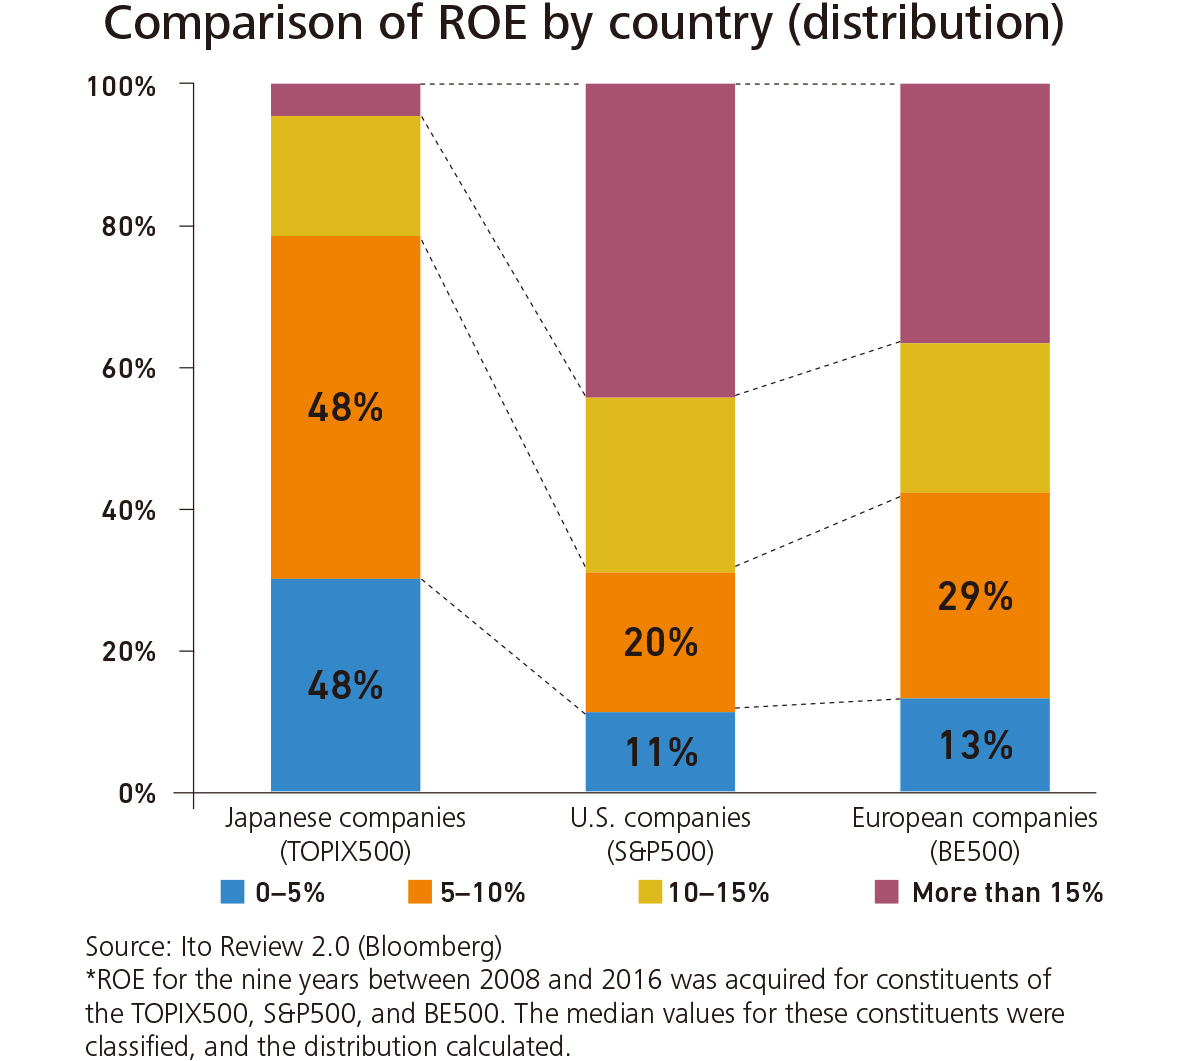 Comparison of ROE by country (distribution)